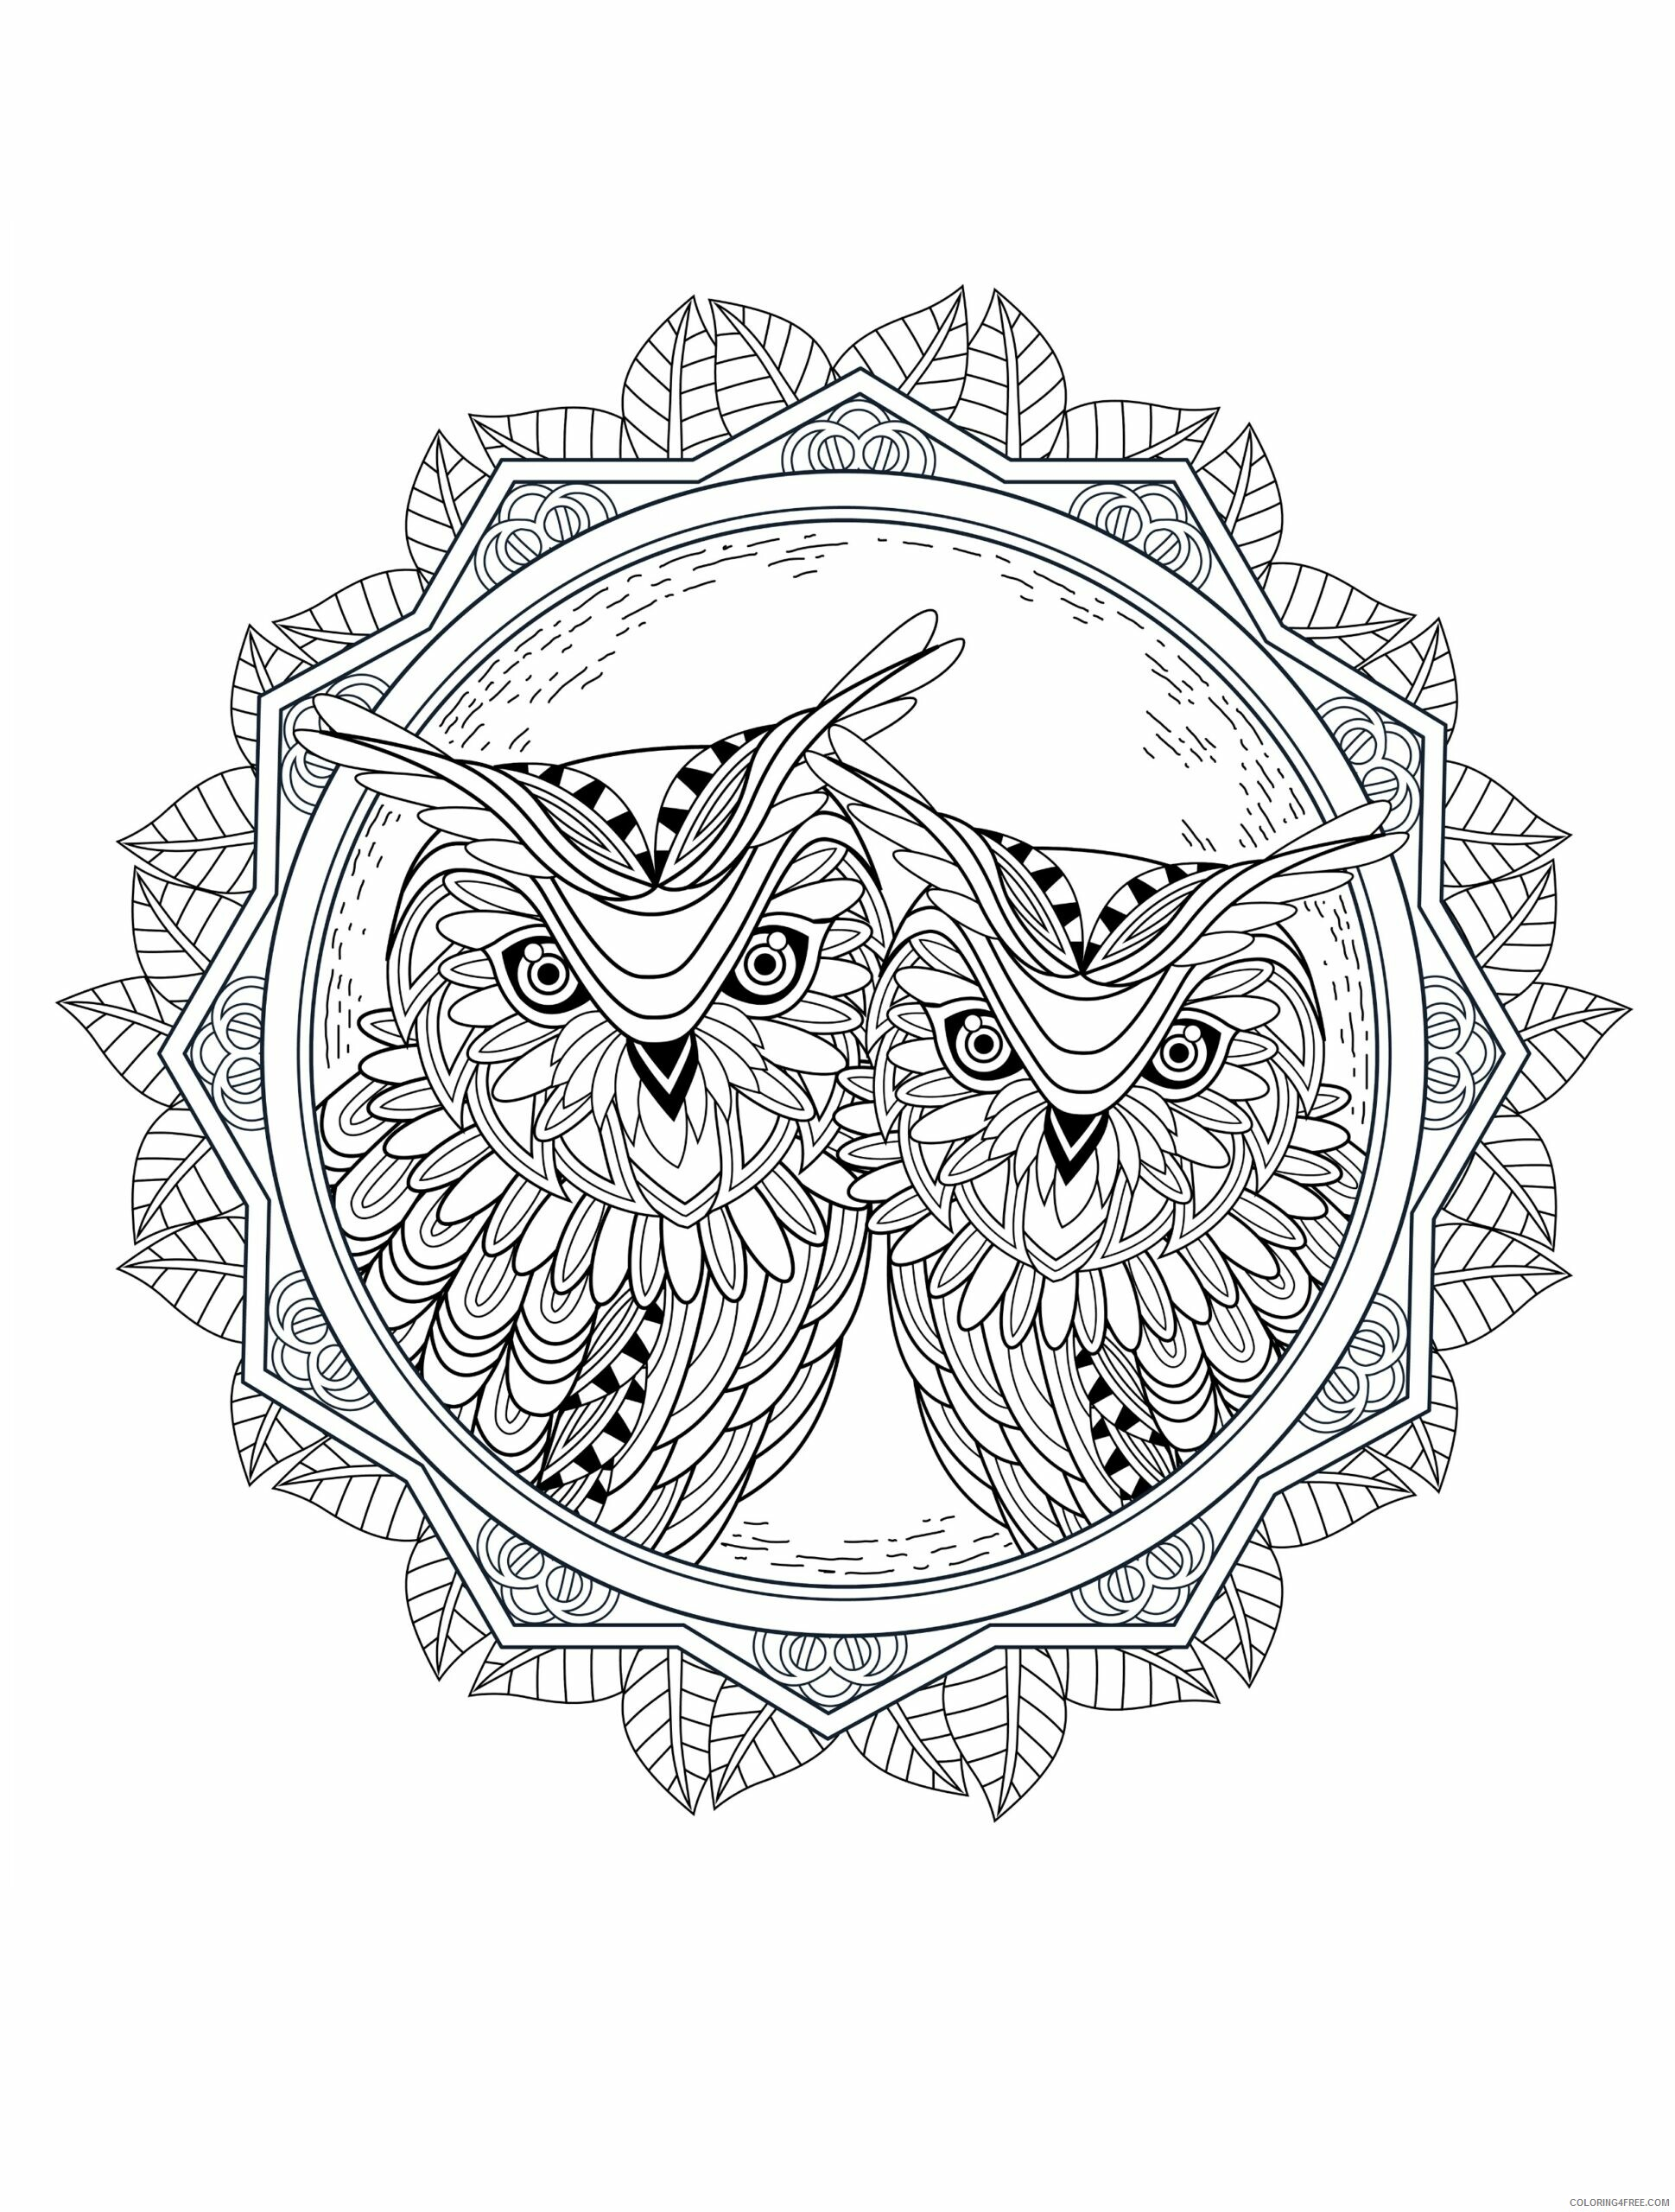 Adult Owl Coloring Pages Printable Owl for Adults Free Printable 2020 454 Coloring4free